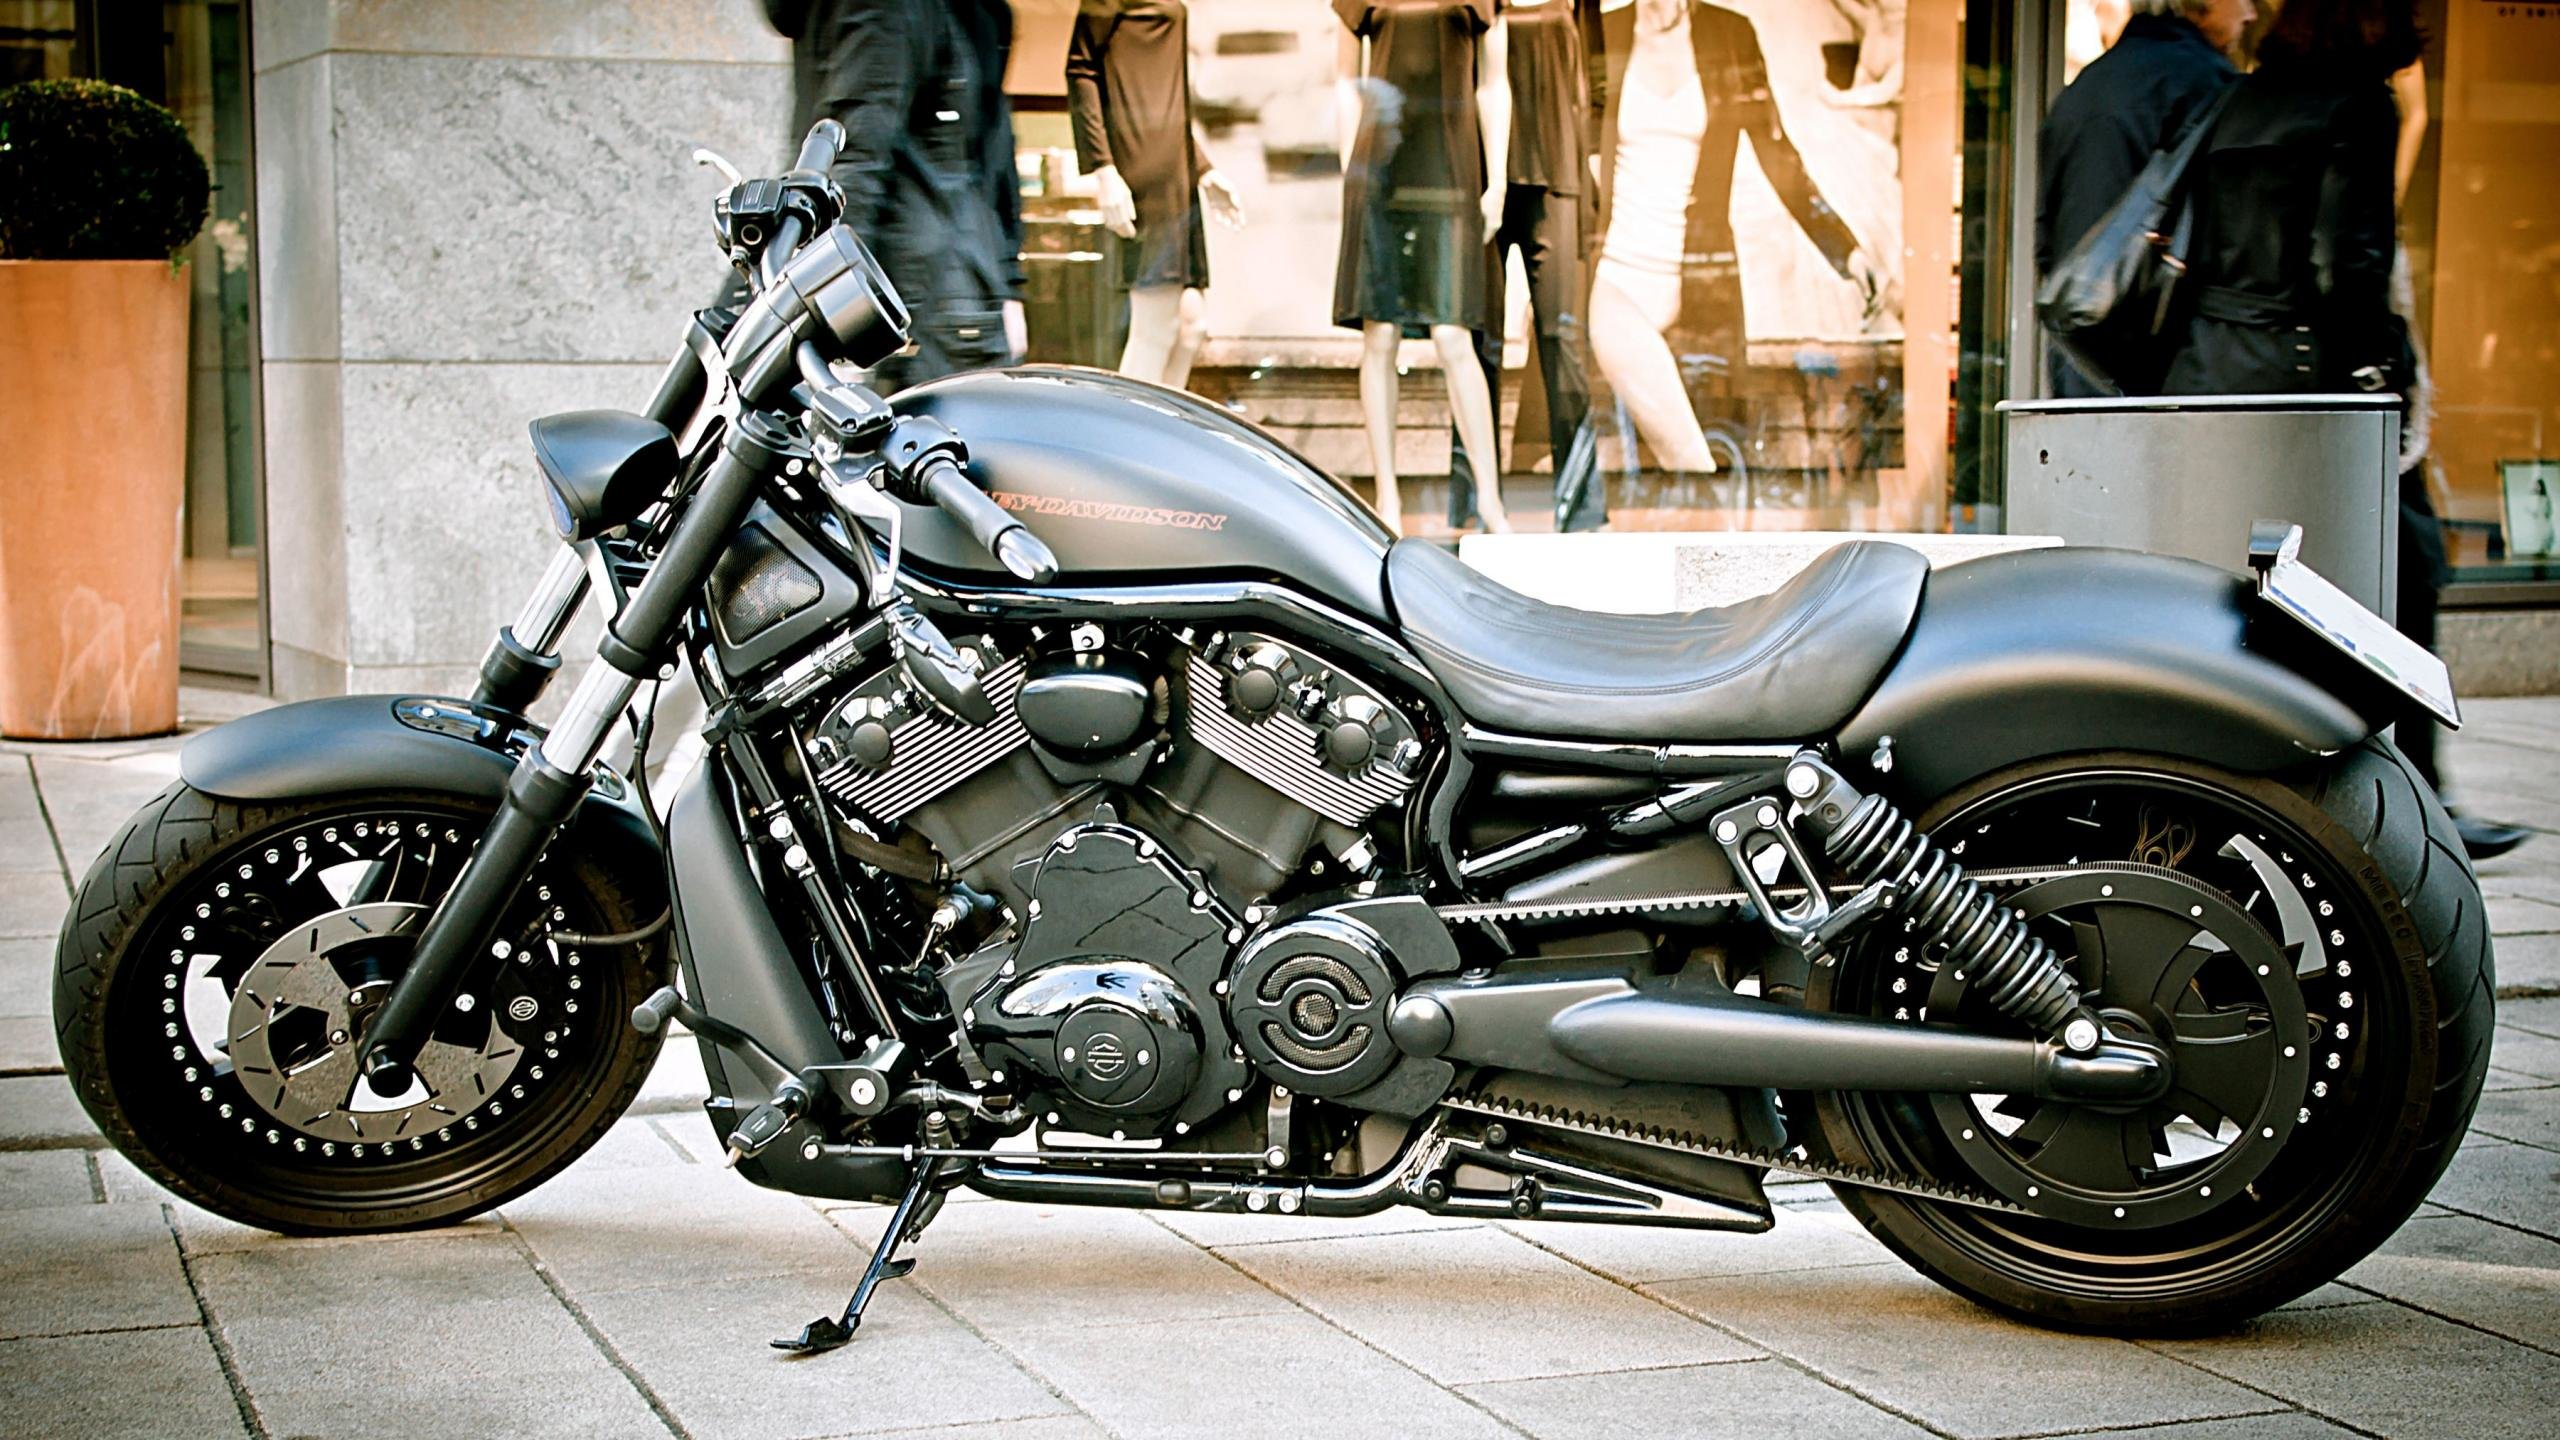 Awesome Harley Davidson Free Wallpaper ID:478185 For Hd 2560x1440 Computer